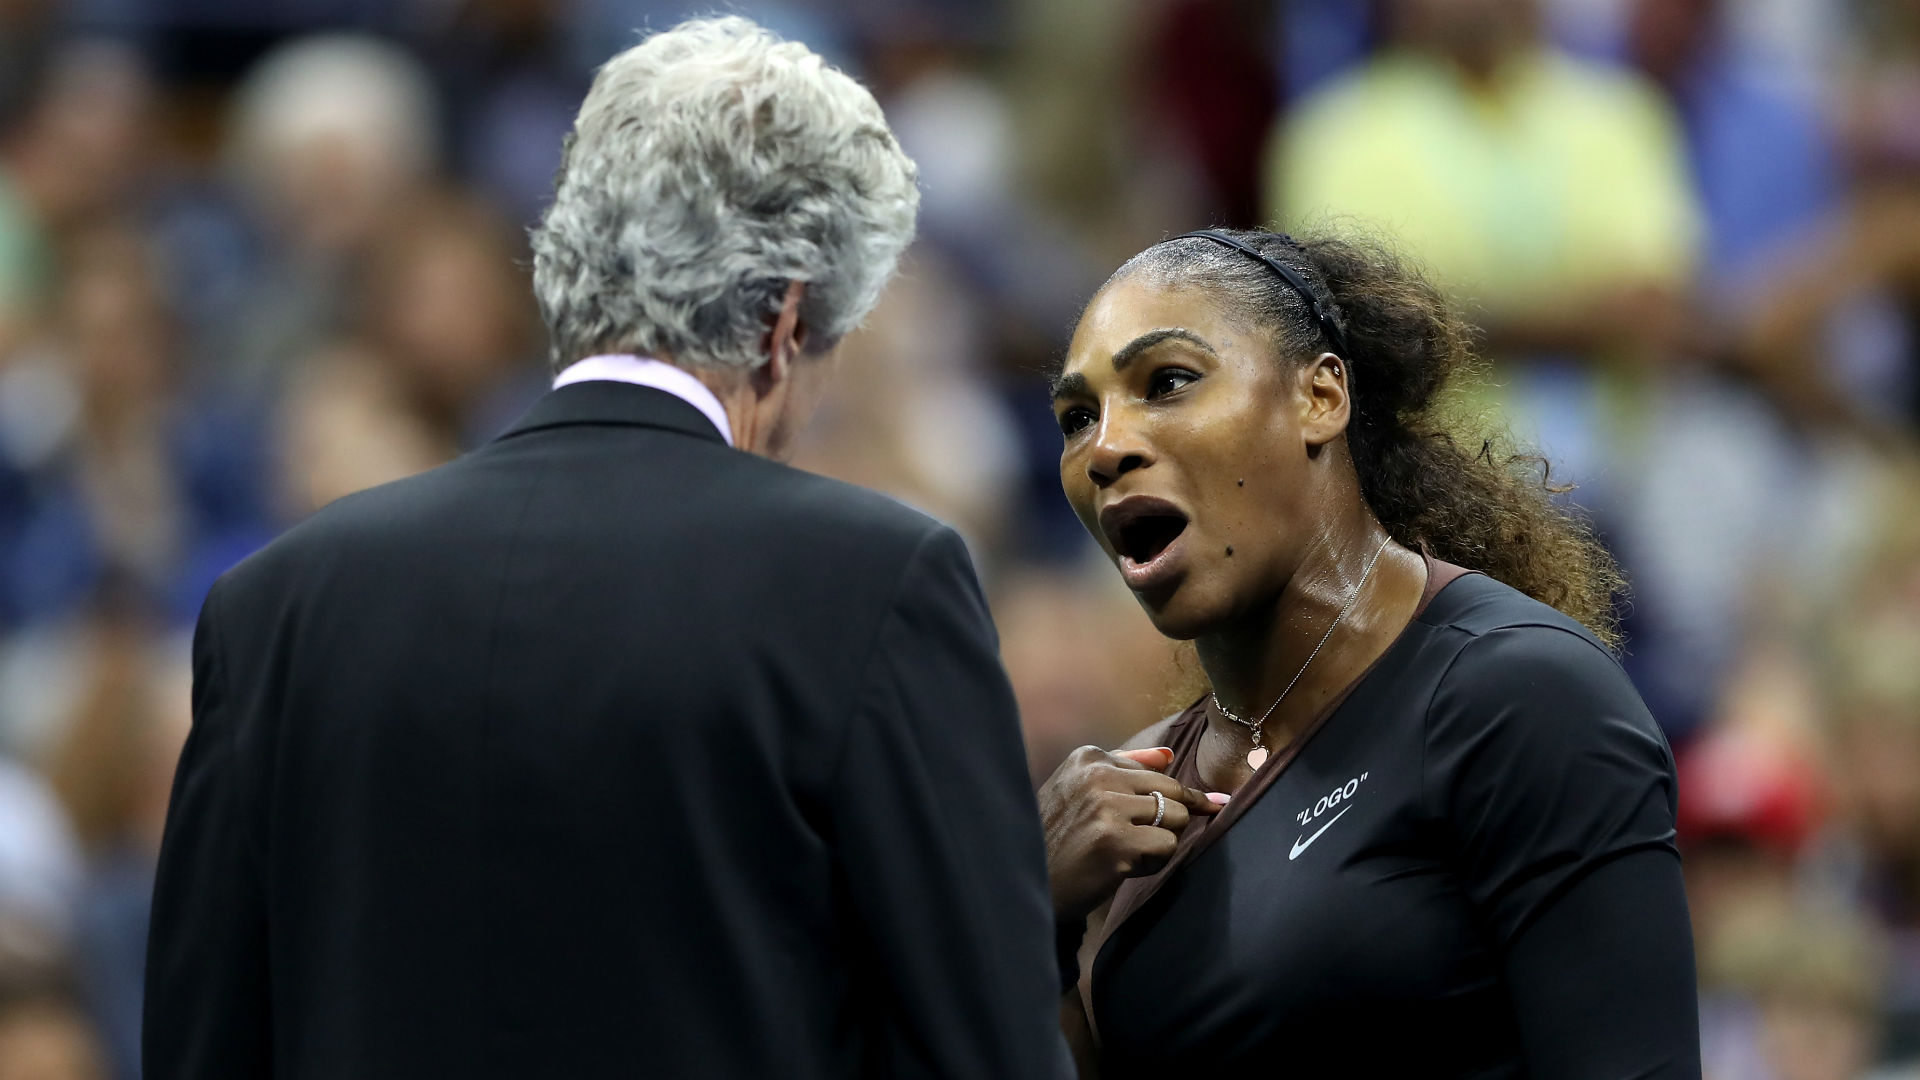 Martina Navratilova says Serena Williams was partly right but mostly wrong